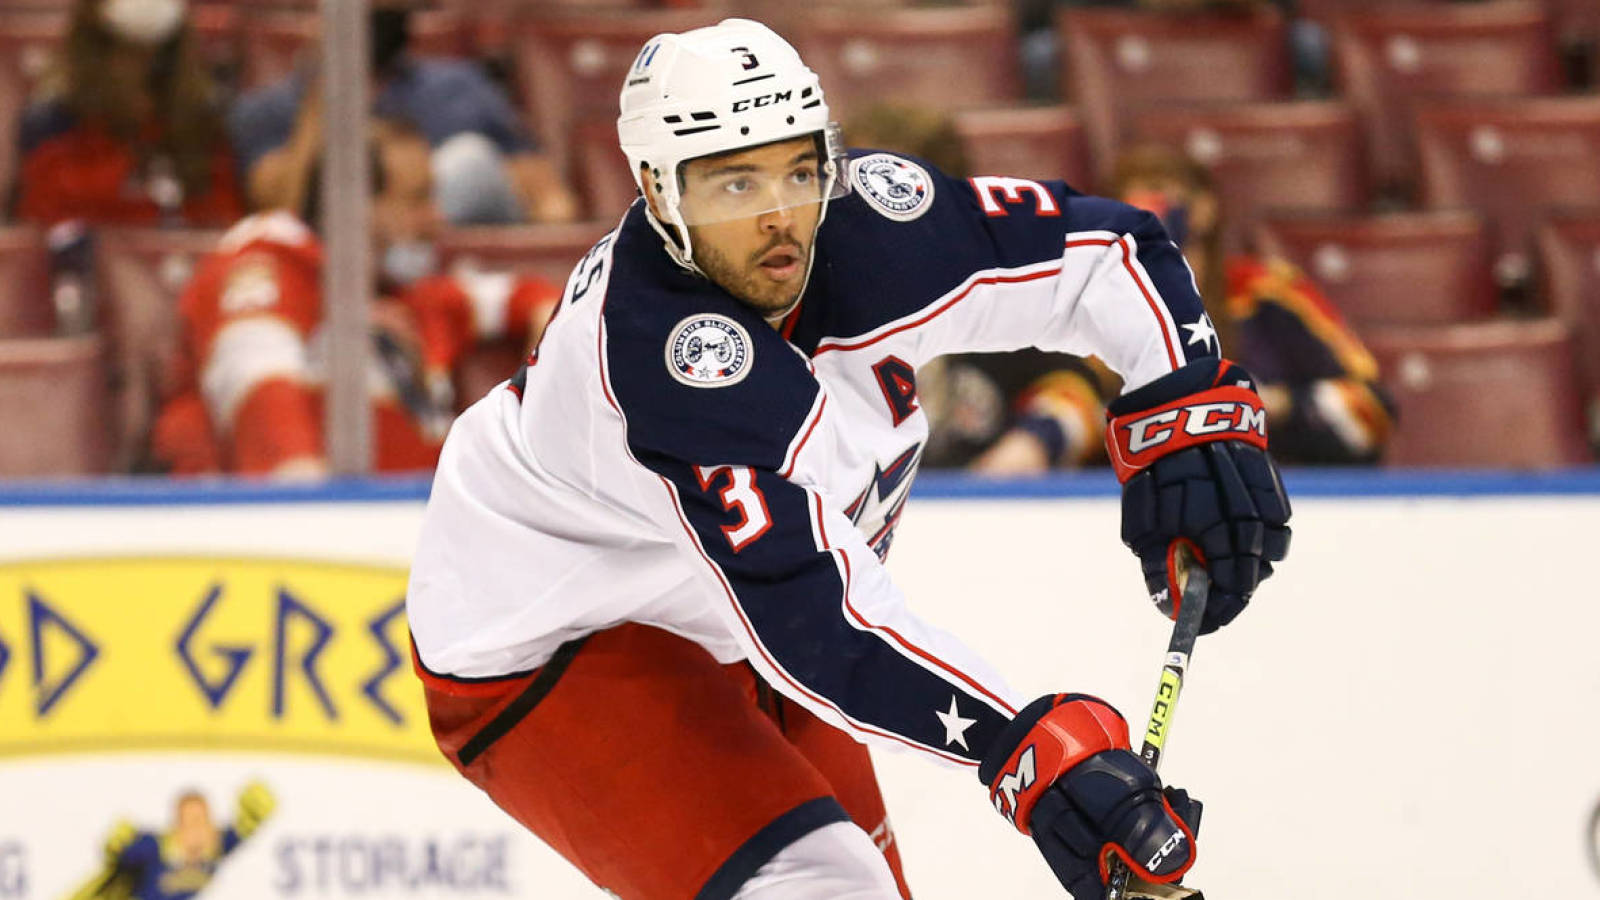 Seth Jones is traded to Blackhawks and gets a new contract